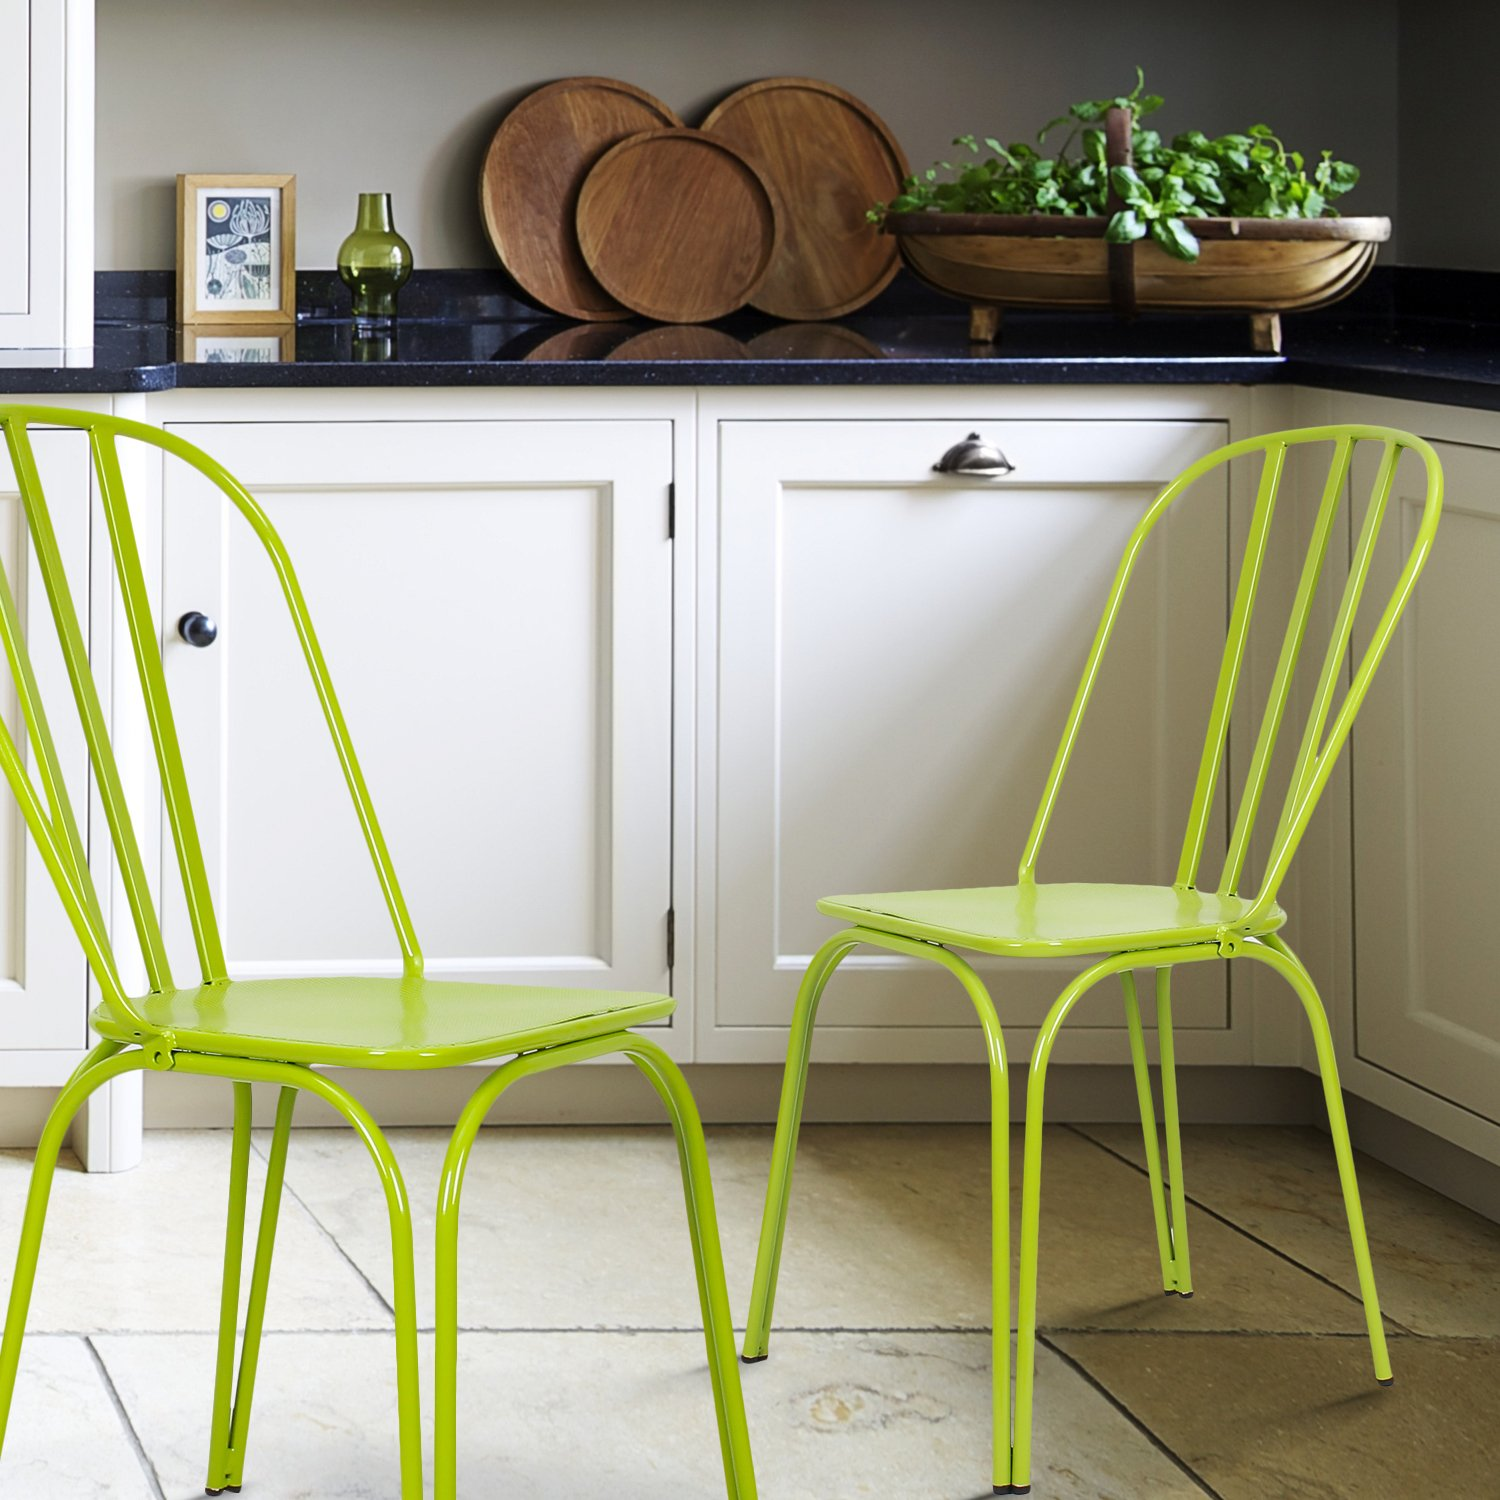 Set of 2 Lime Green Adeco Contemporary Hollow Back Steel Stackable Chairs Height 33 Inch